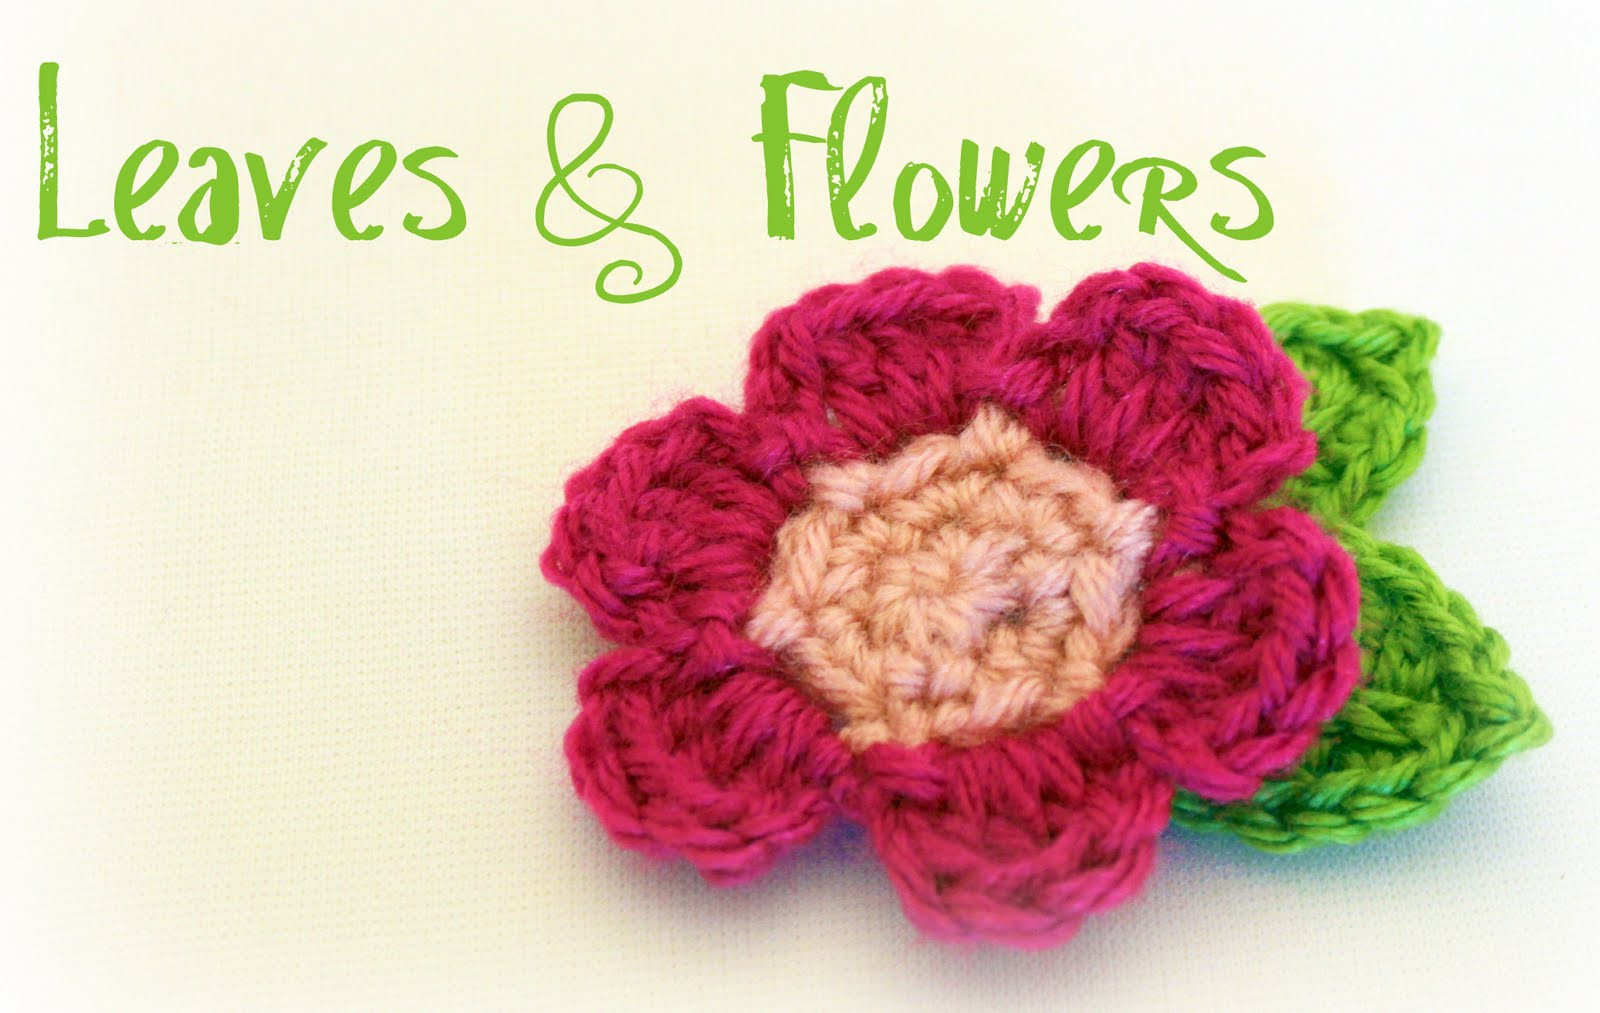 Easy Crochet Flower Patterns Free Awesome Easy Crochet Pattern Fast Crochet and Knitting Patterns Of Innovative 47 Images Easy Crochet Flower Patterns Free